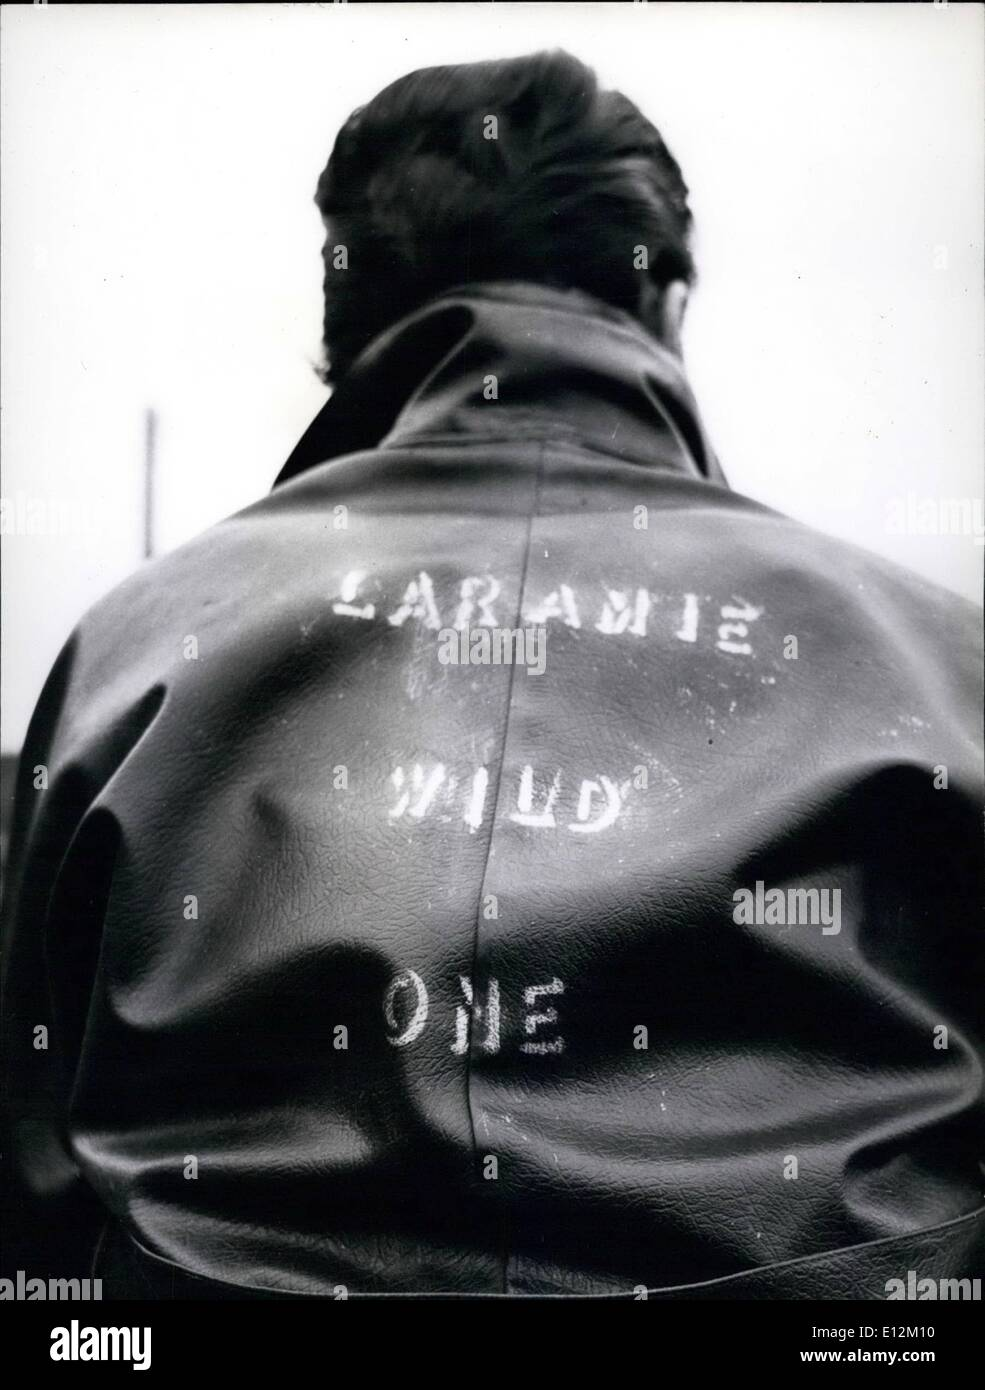 Feb. 24, 2012 - Significant: Laramie Wild One. A rider without a helmet advertises his character to the world. - Stock Image